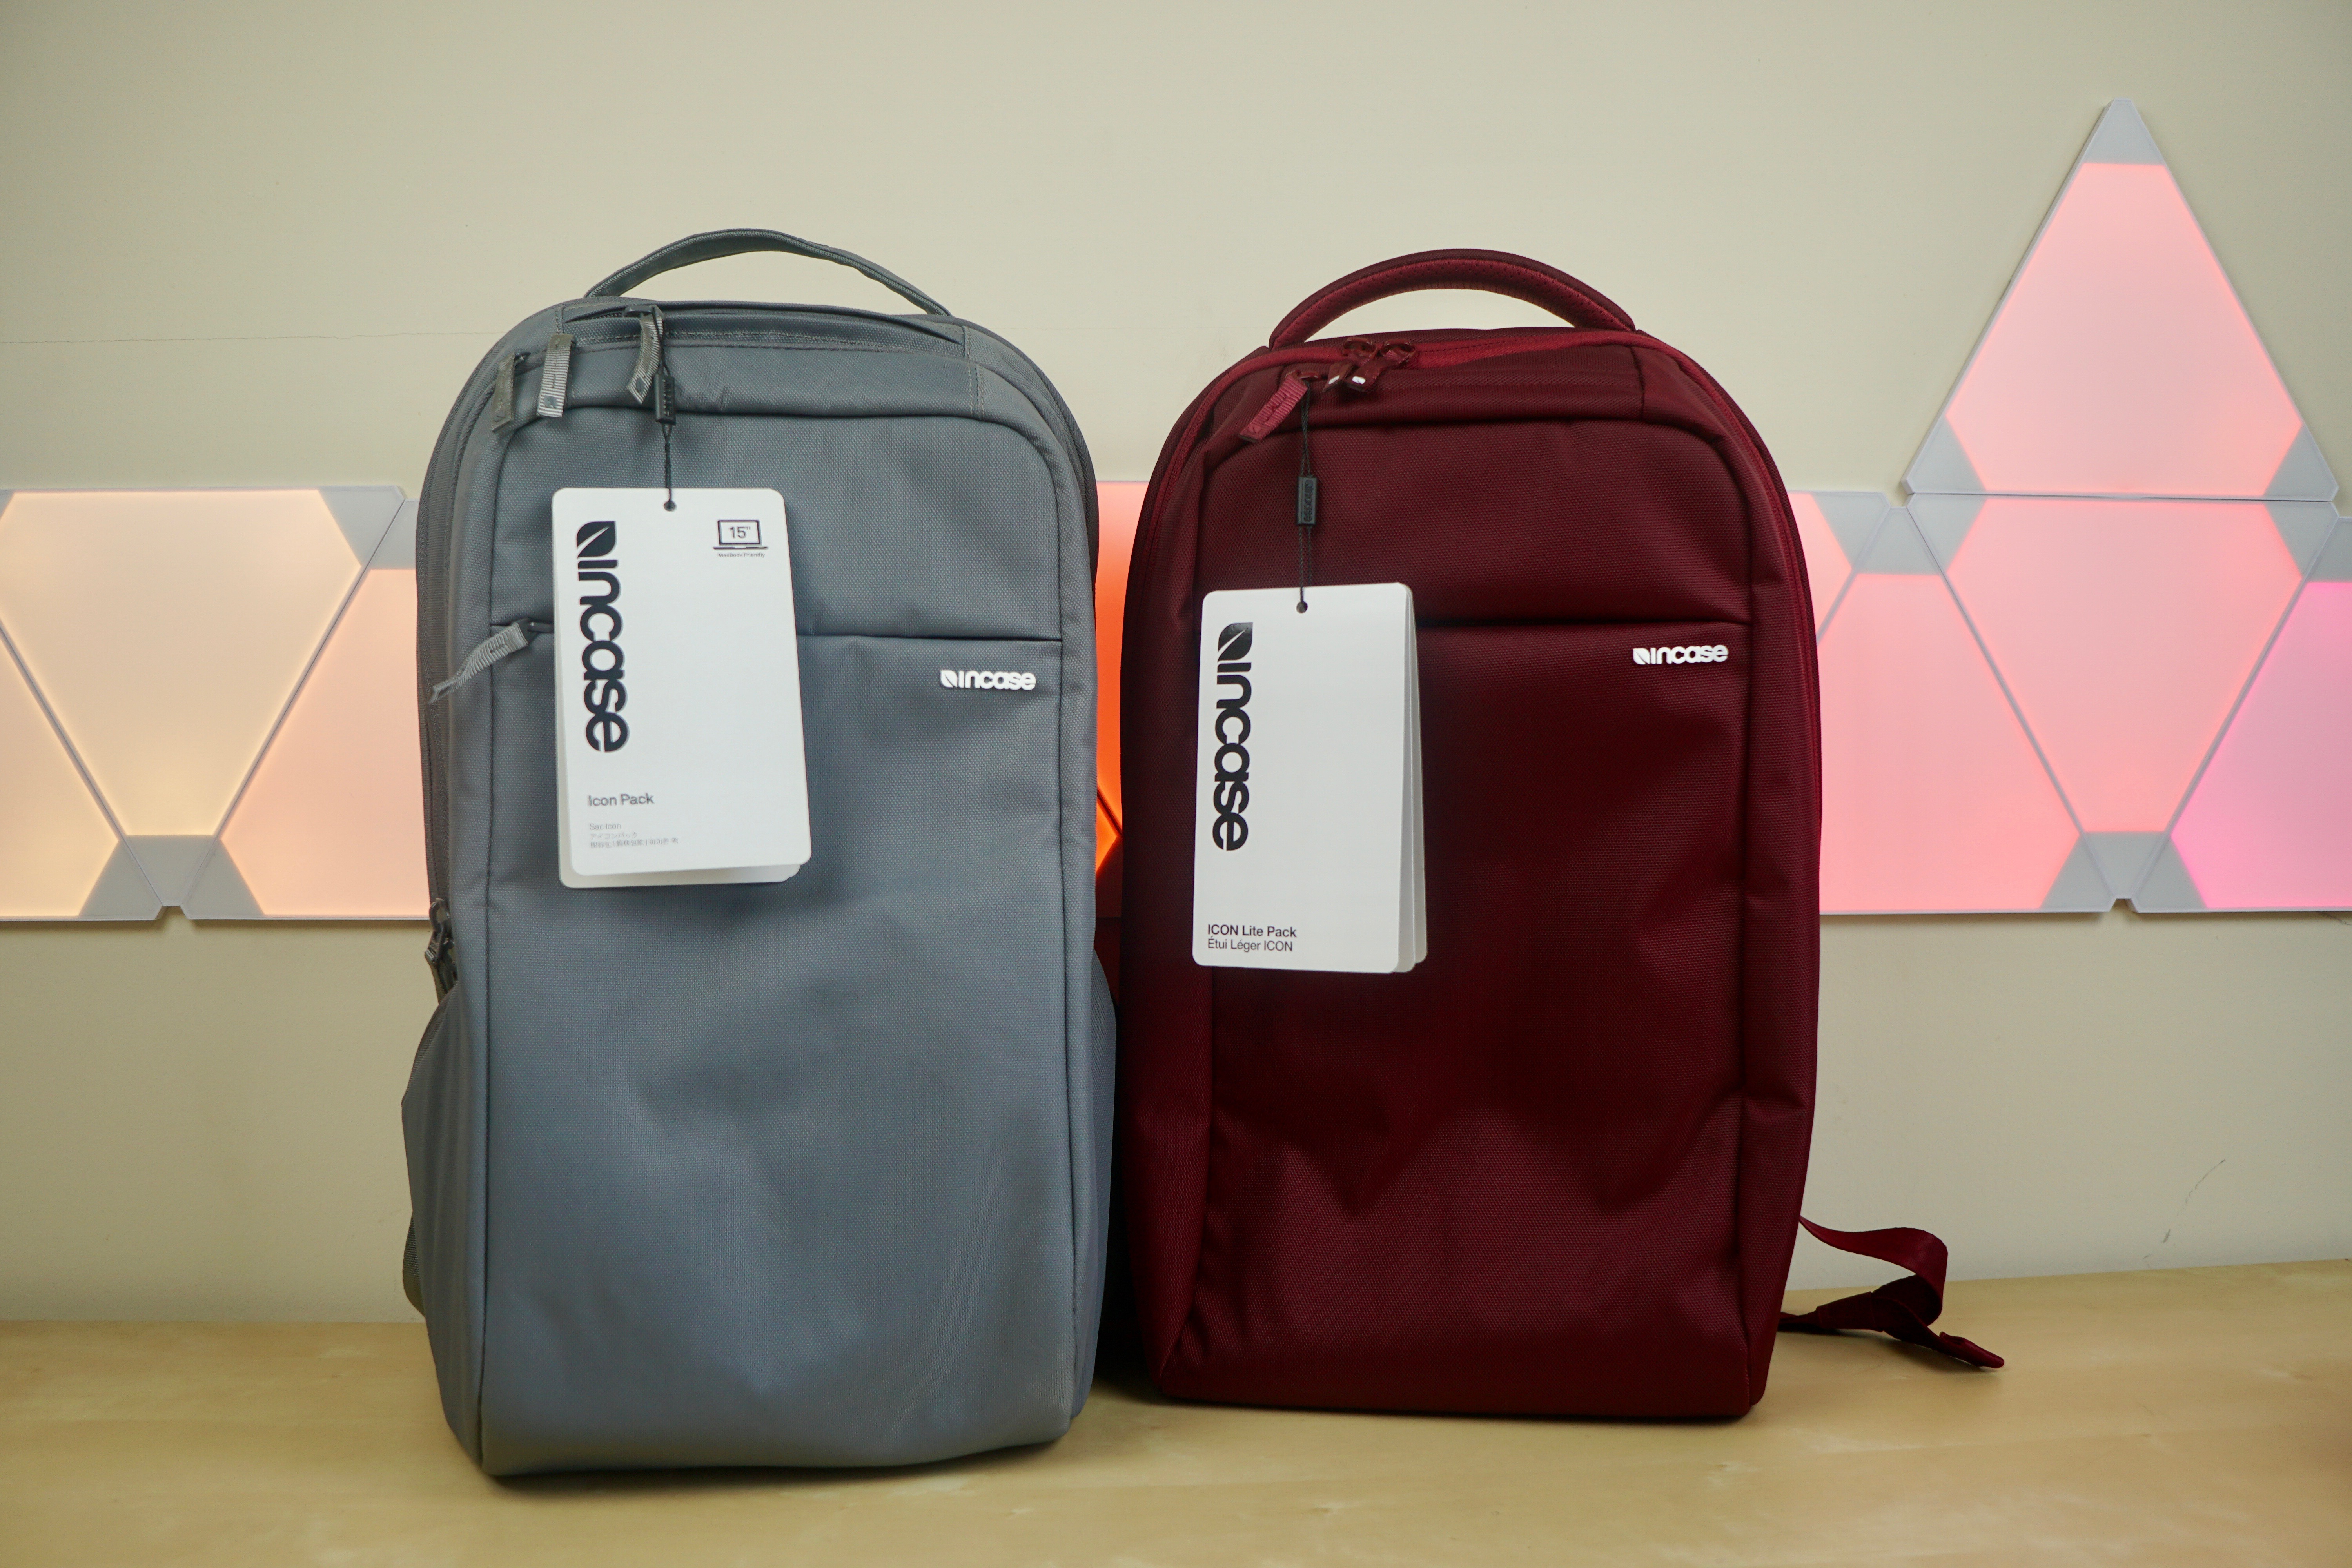 85b5639fb8 Hands-on  Incase ICON and new ICON Lite backpacks fit 15-inch ...